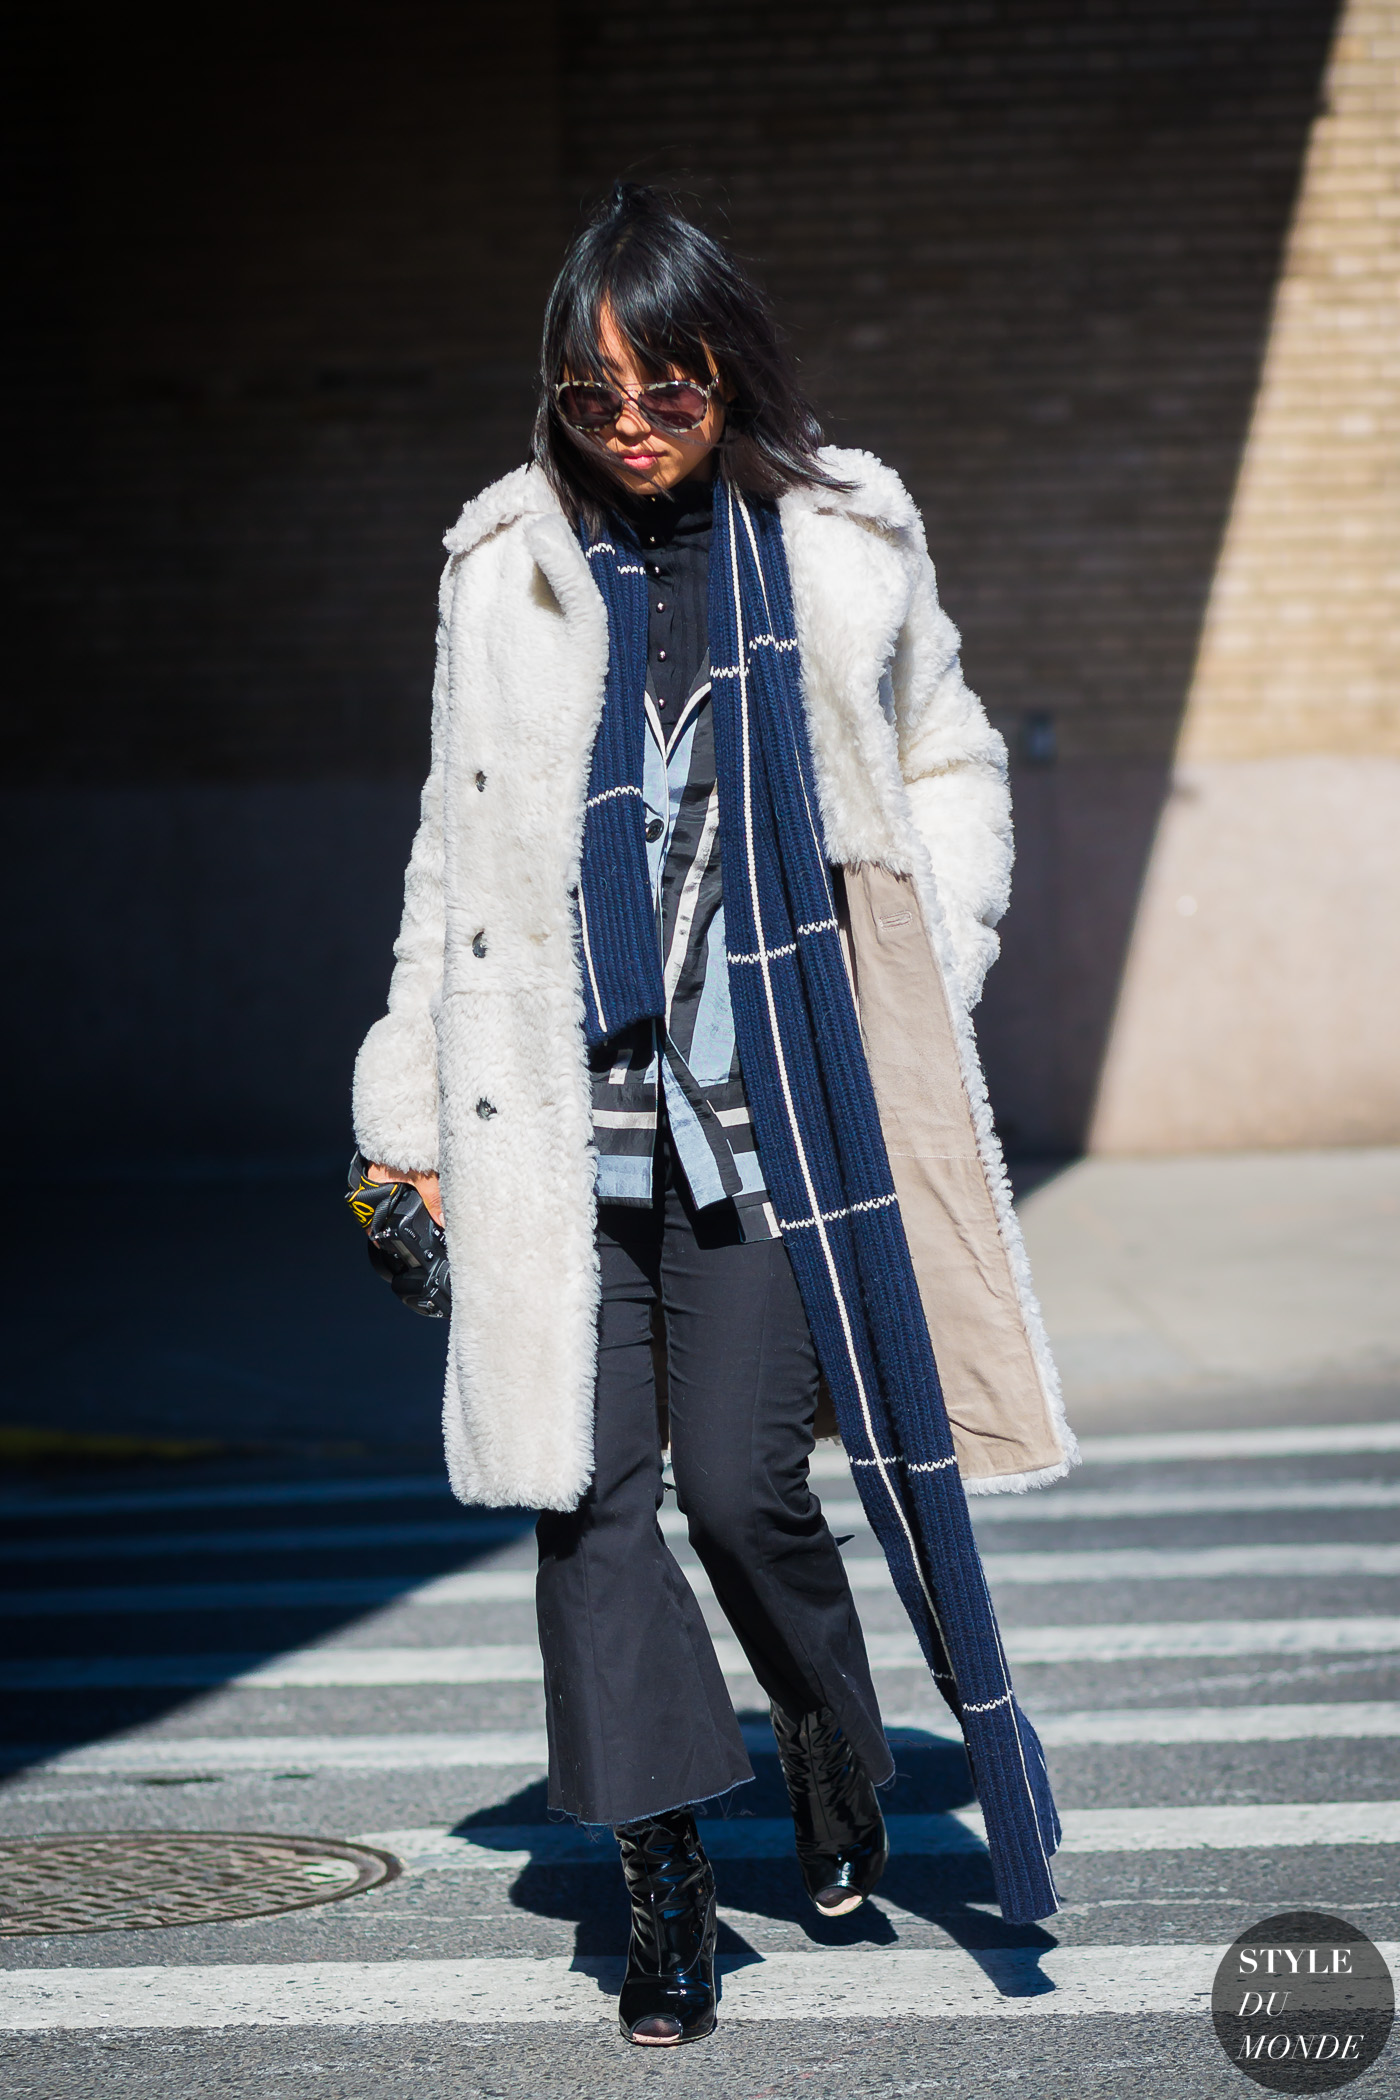 margaret-zhang-by-styledumonde-street-style-fashion-photography